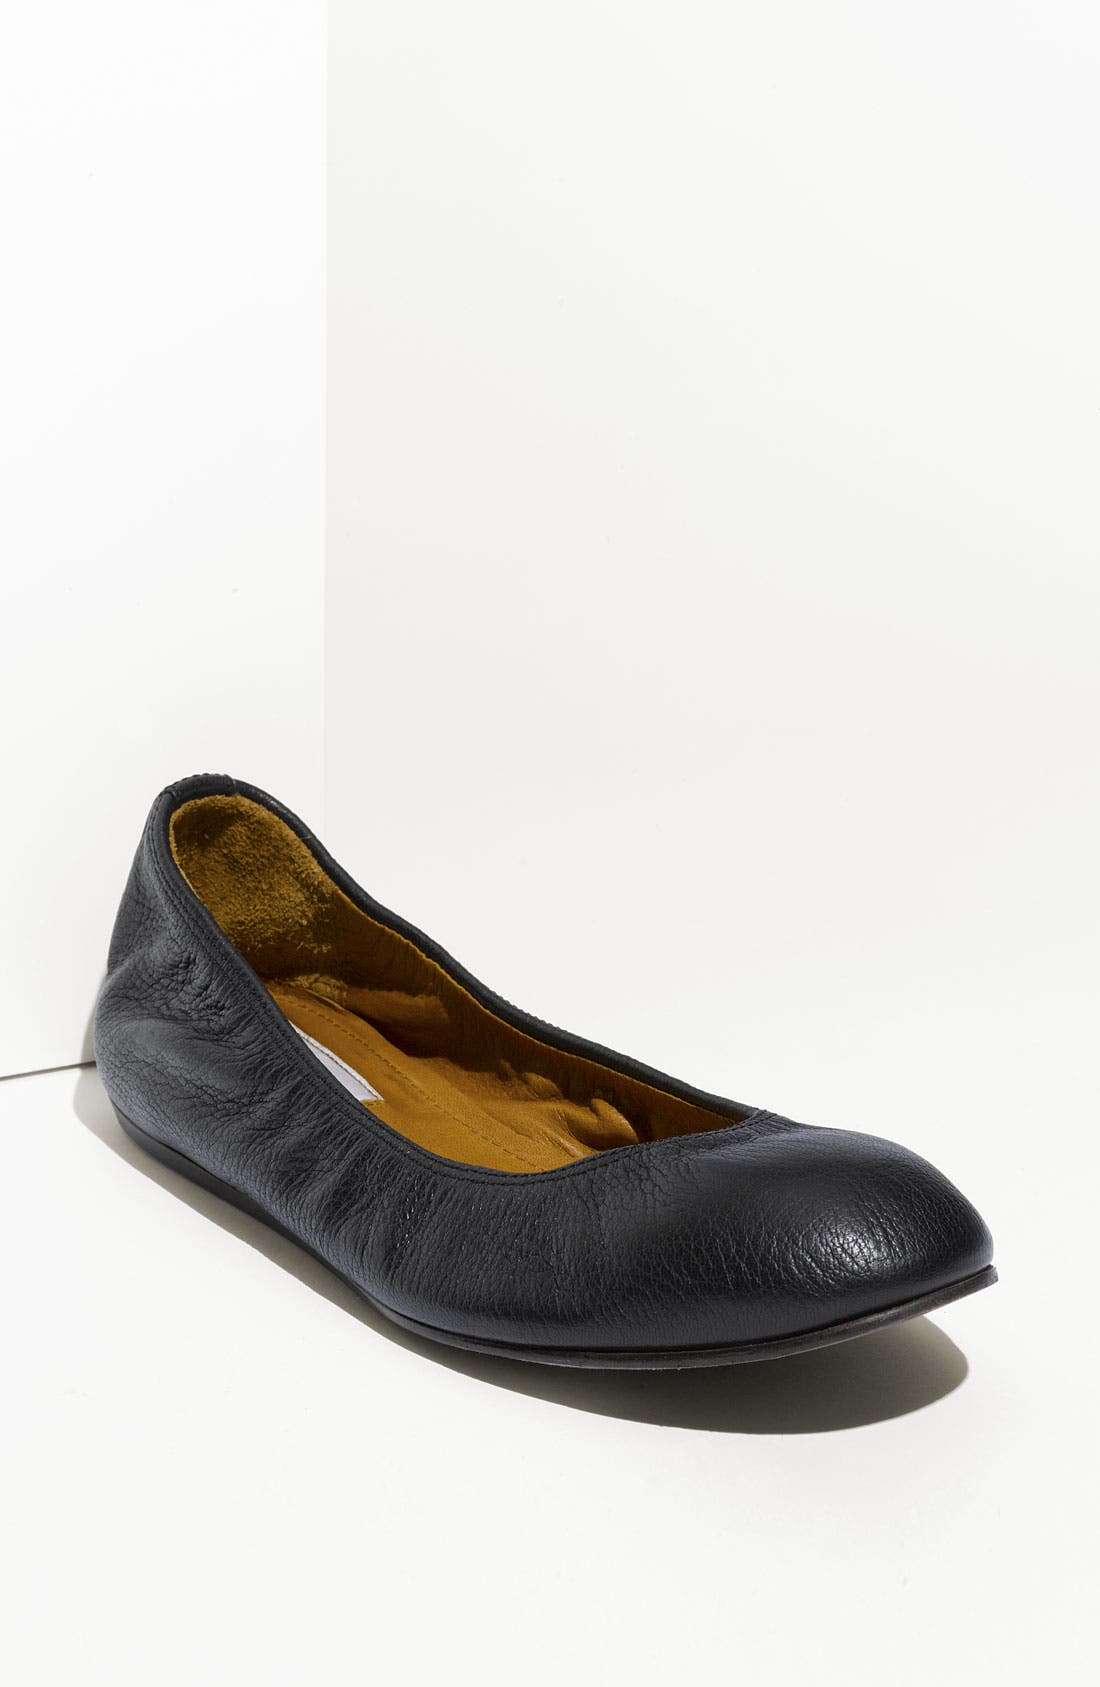 Alternate Image 1 Selected - Lanvin Classic Ballerina Flat